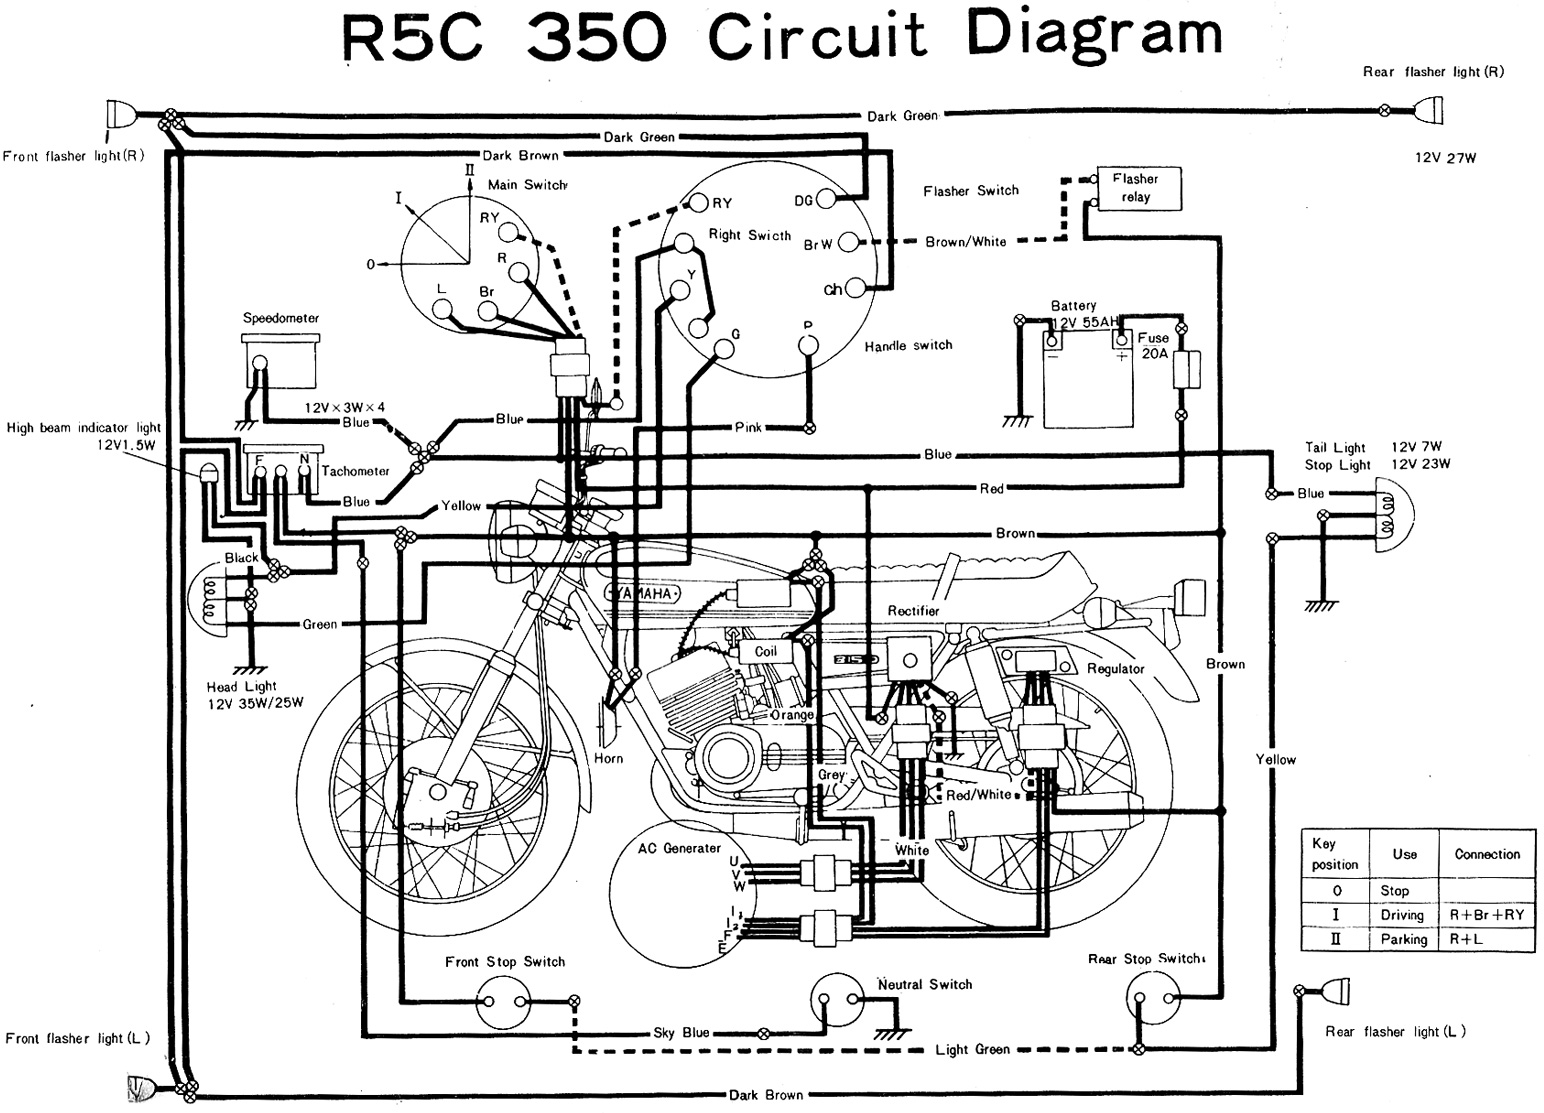 Yamaha RD350 R5C Wiring Diagram yamaha rd350 r5c wiring diagram evan fell motorcycle worksevan rd 250 wiring diagram at bayanpartner.co